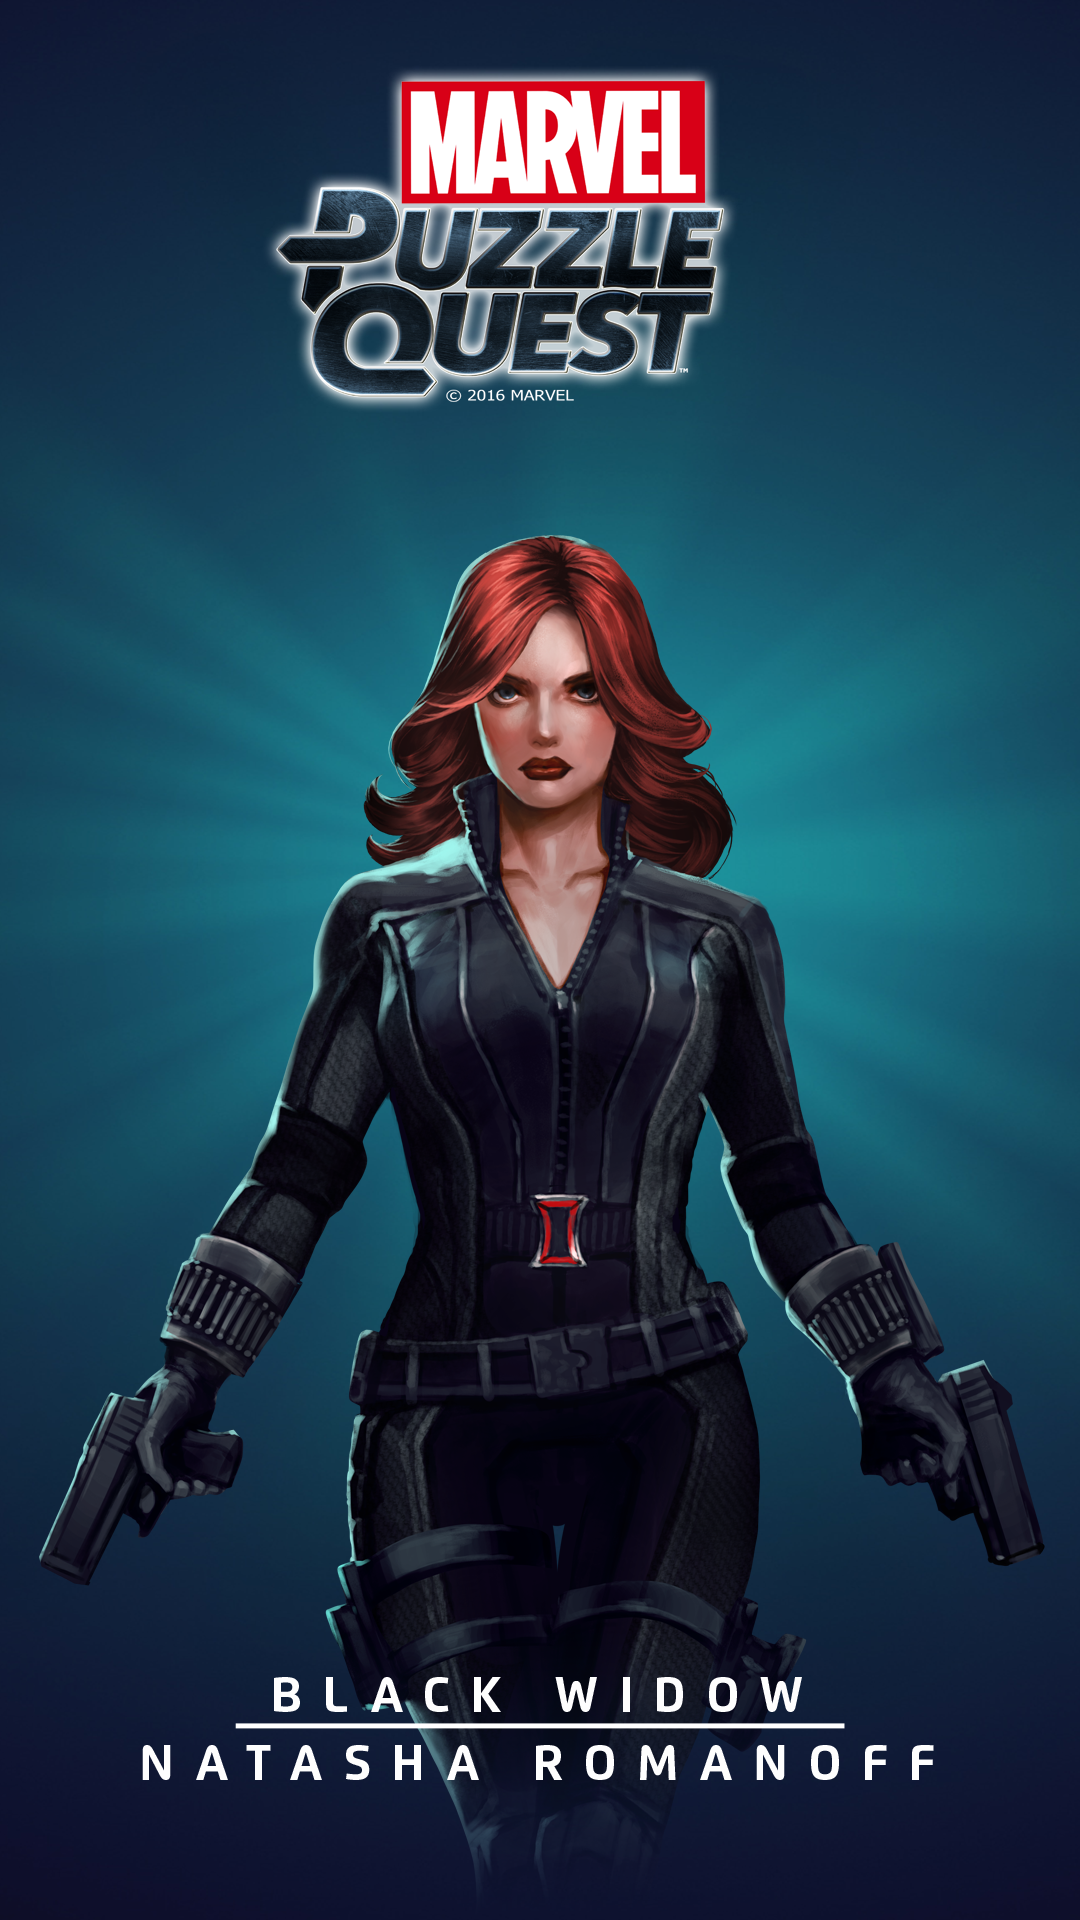 Marvel black widow - photo#47